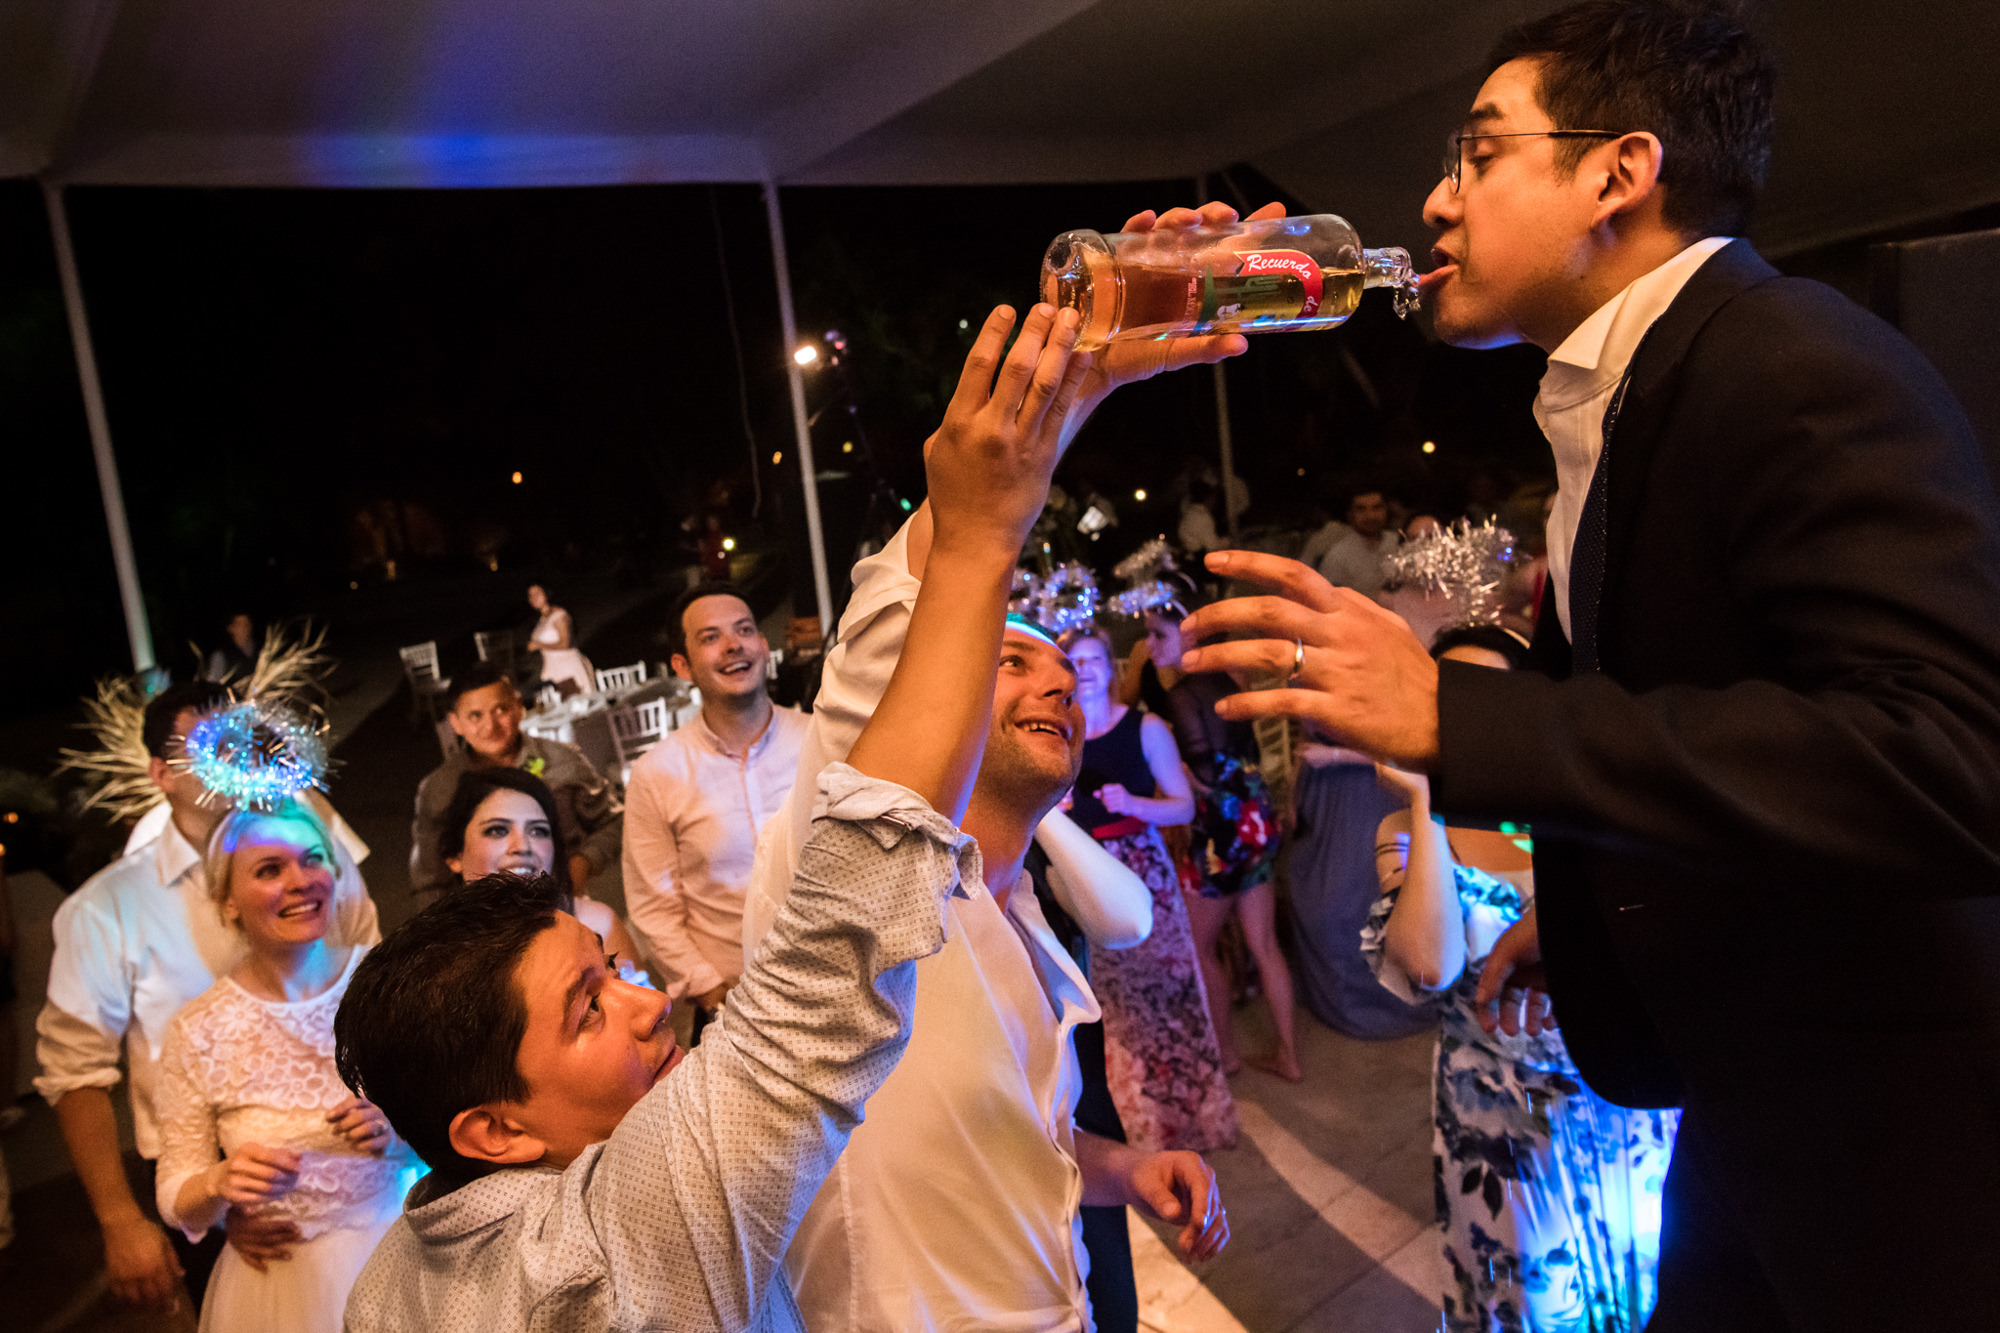 Guests pour vodka into grooms mouth photo by Fotobelle: Isabelle Hattink